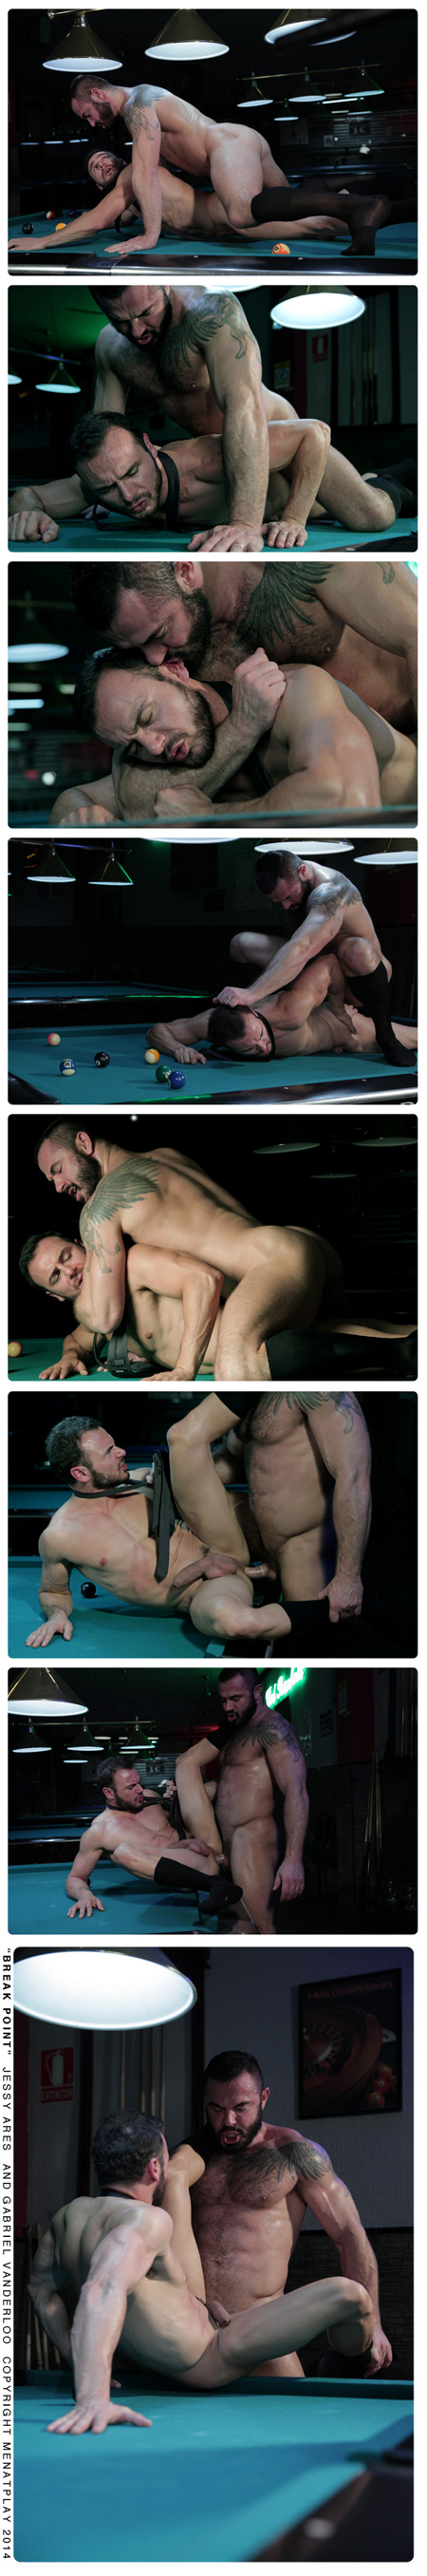 Hairy masculine men fucking in a dimly lit pool hall.